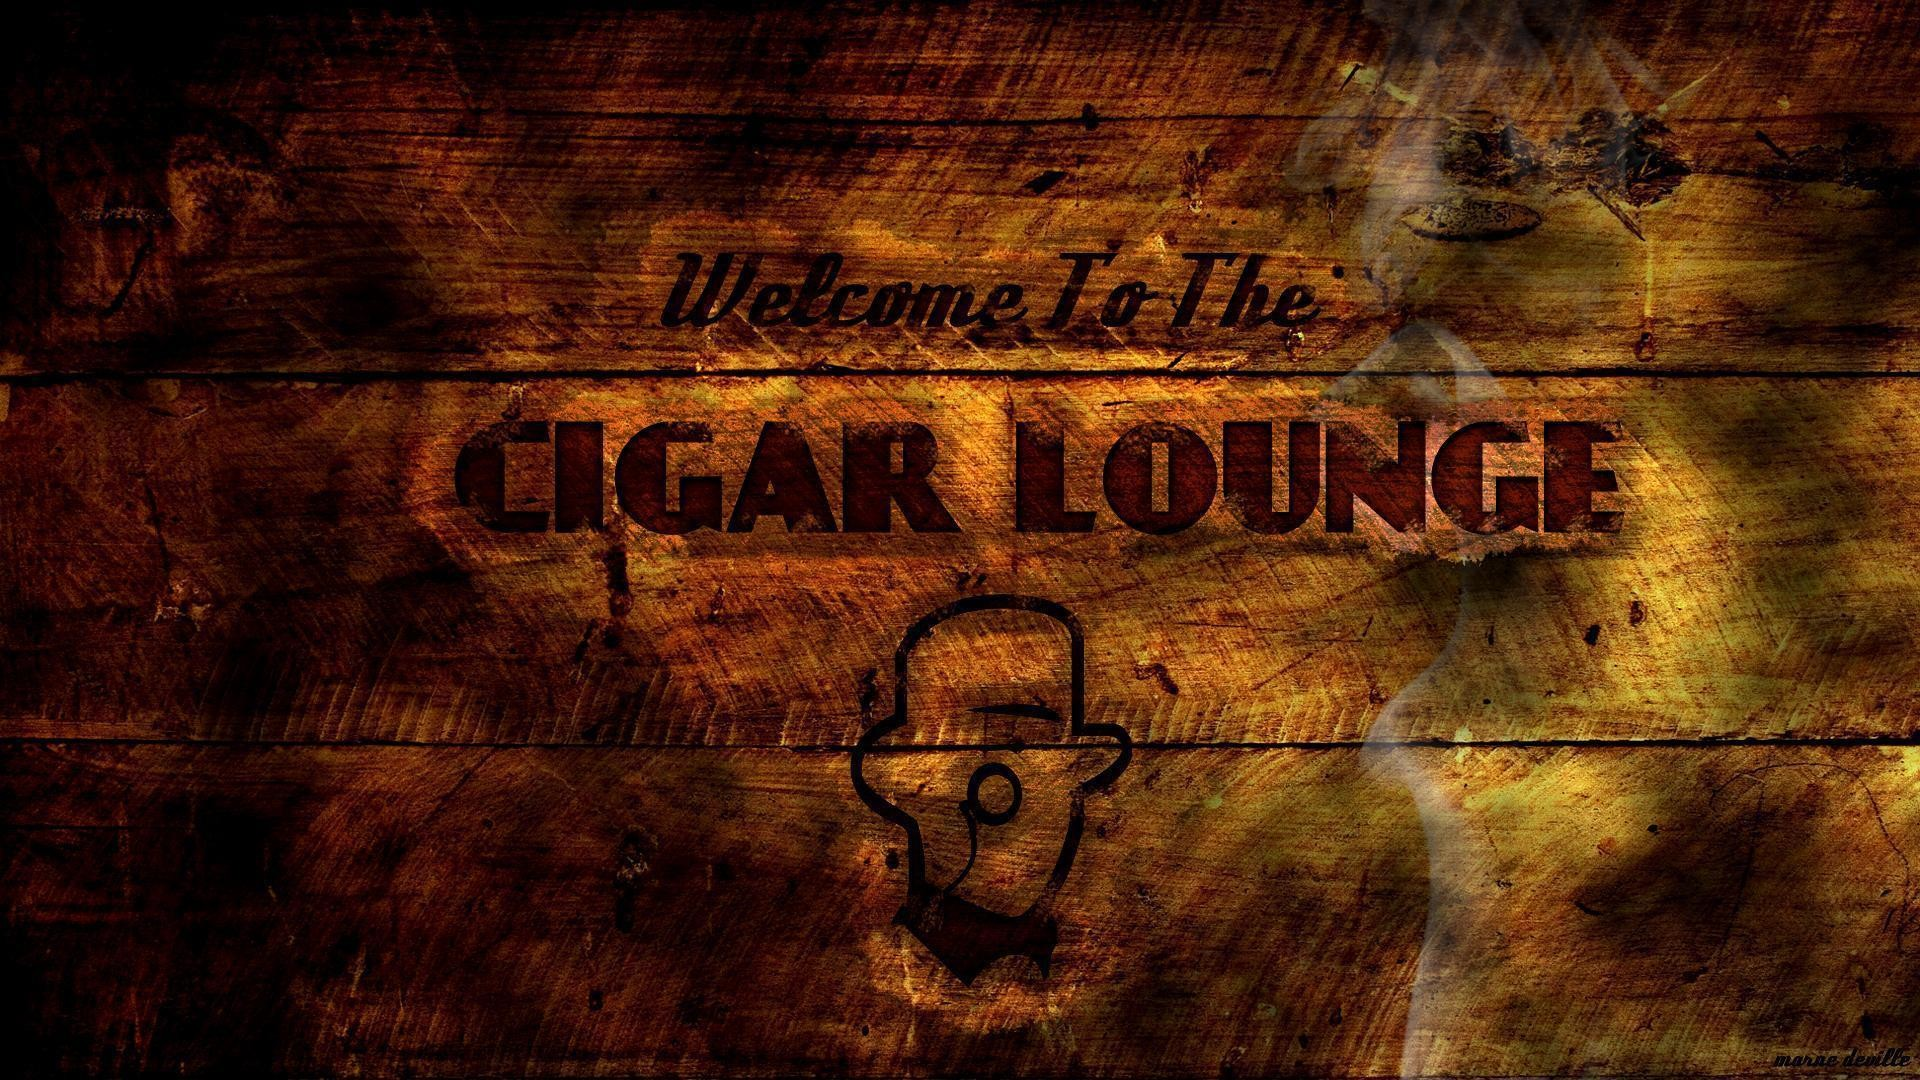 hd cigar wallpaper (70+ images)